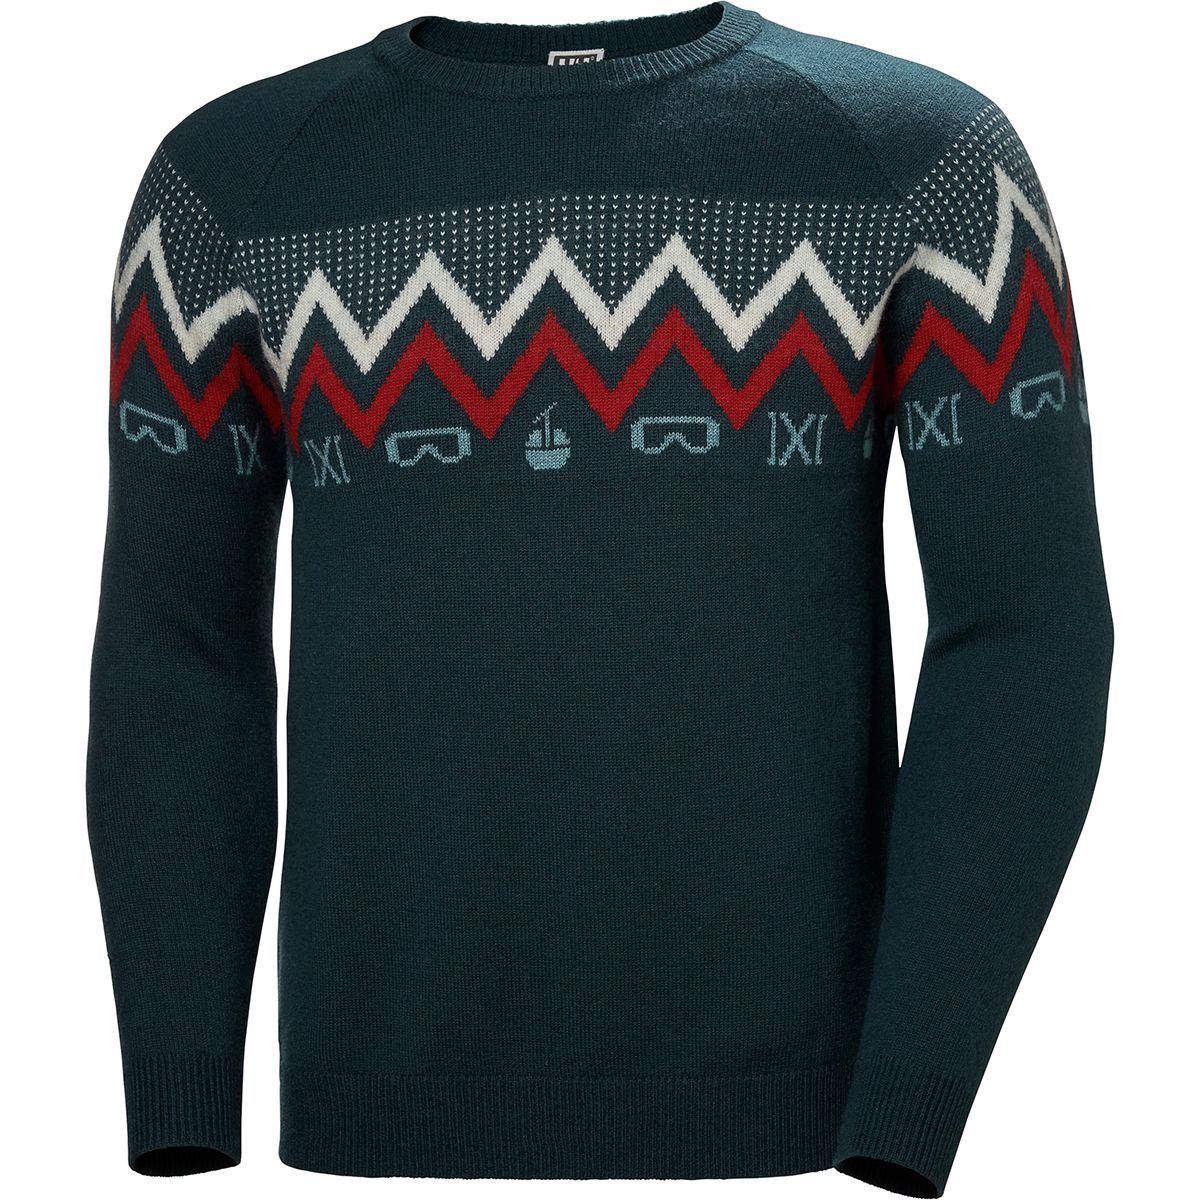 Photo of Wool Knit Sweater – Men's